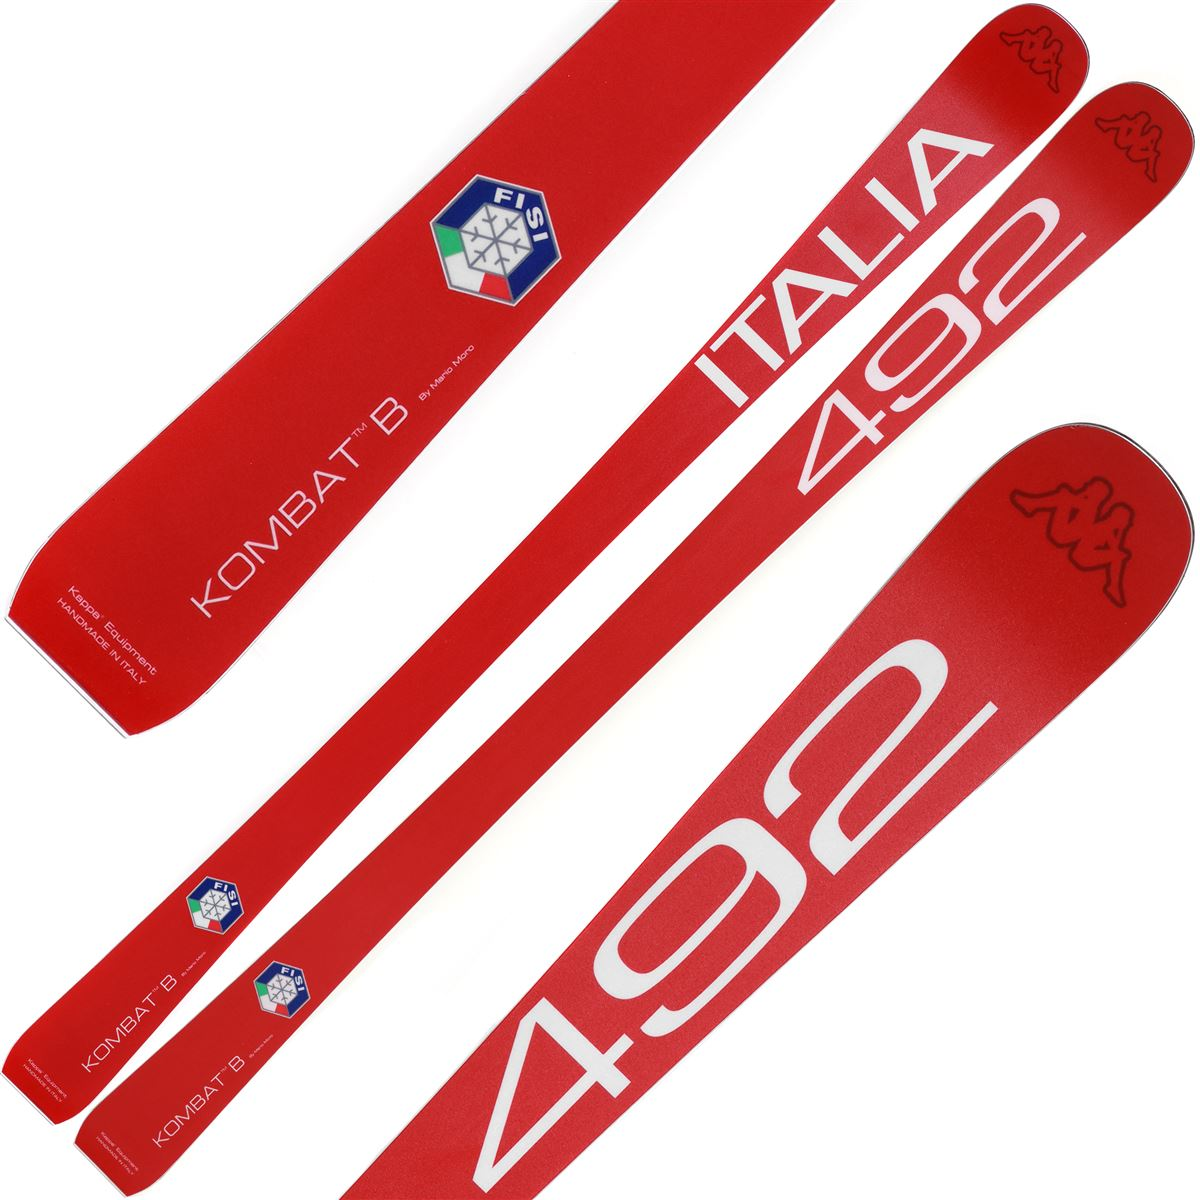 Kappa Ski 4CENTO KOMBAT B 492 FISI Man Woman Winter sports National Italy